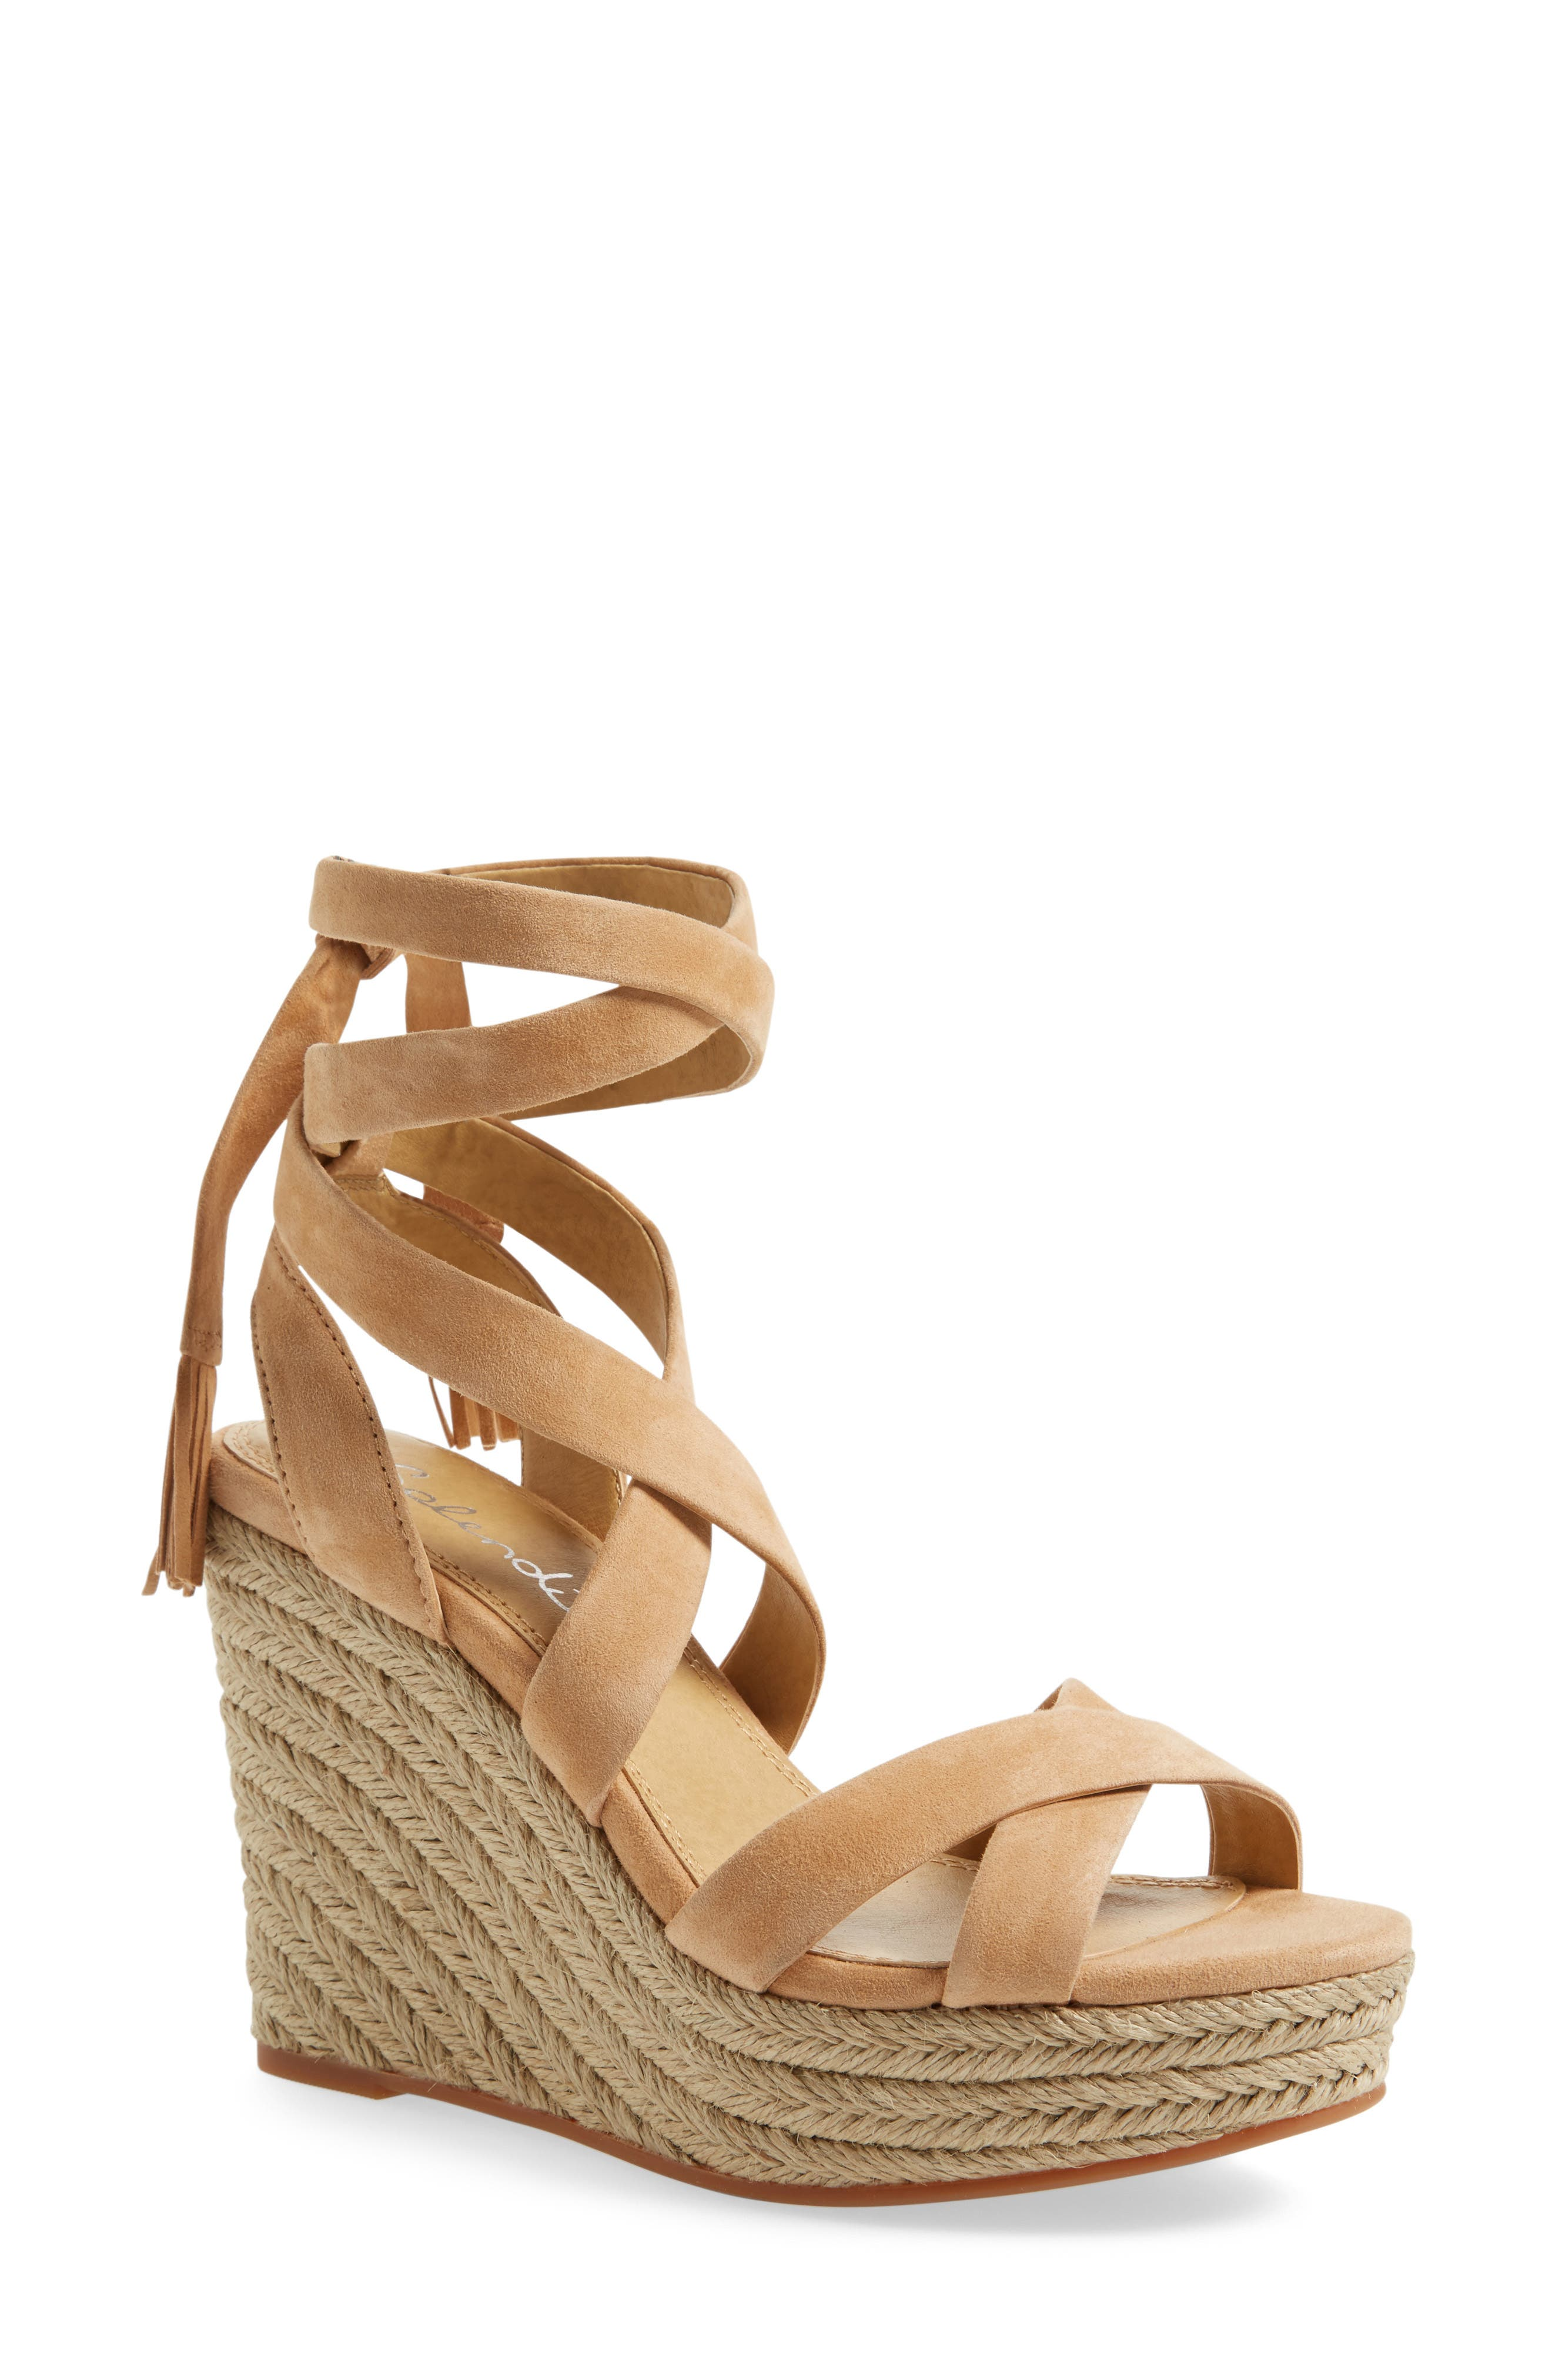 Main Image - Splendid Janice Espadrille Wedge Sandal (Women)